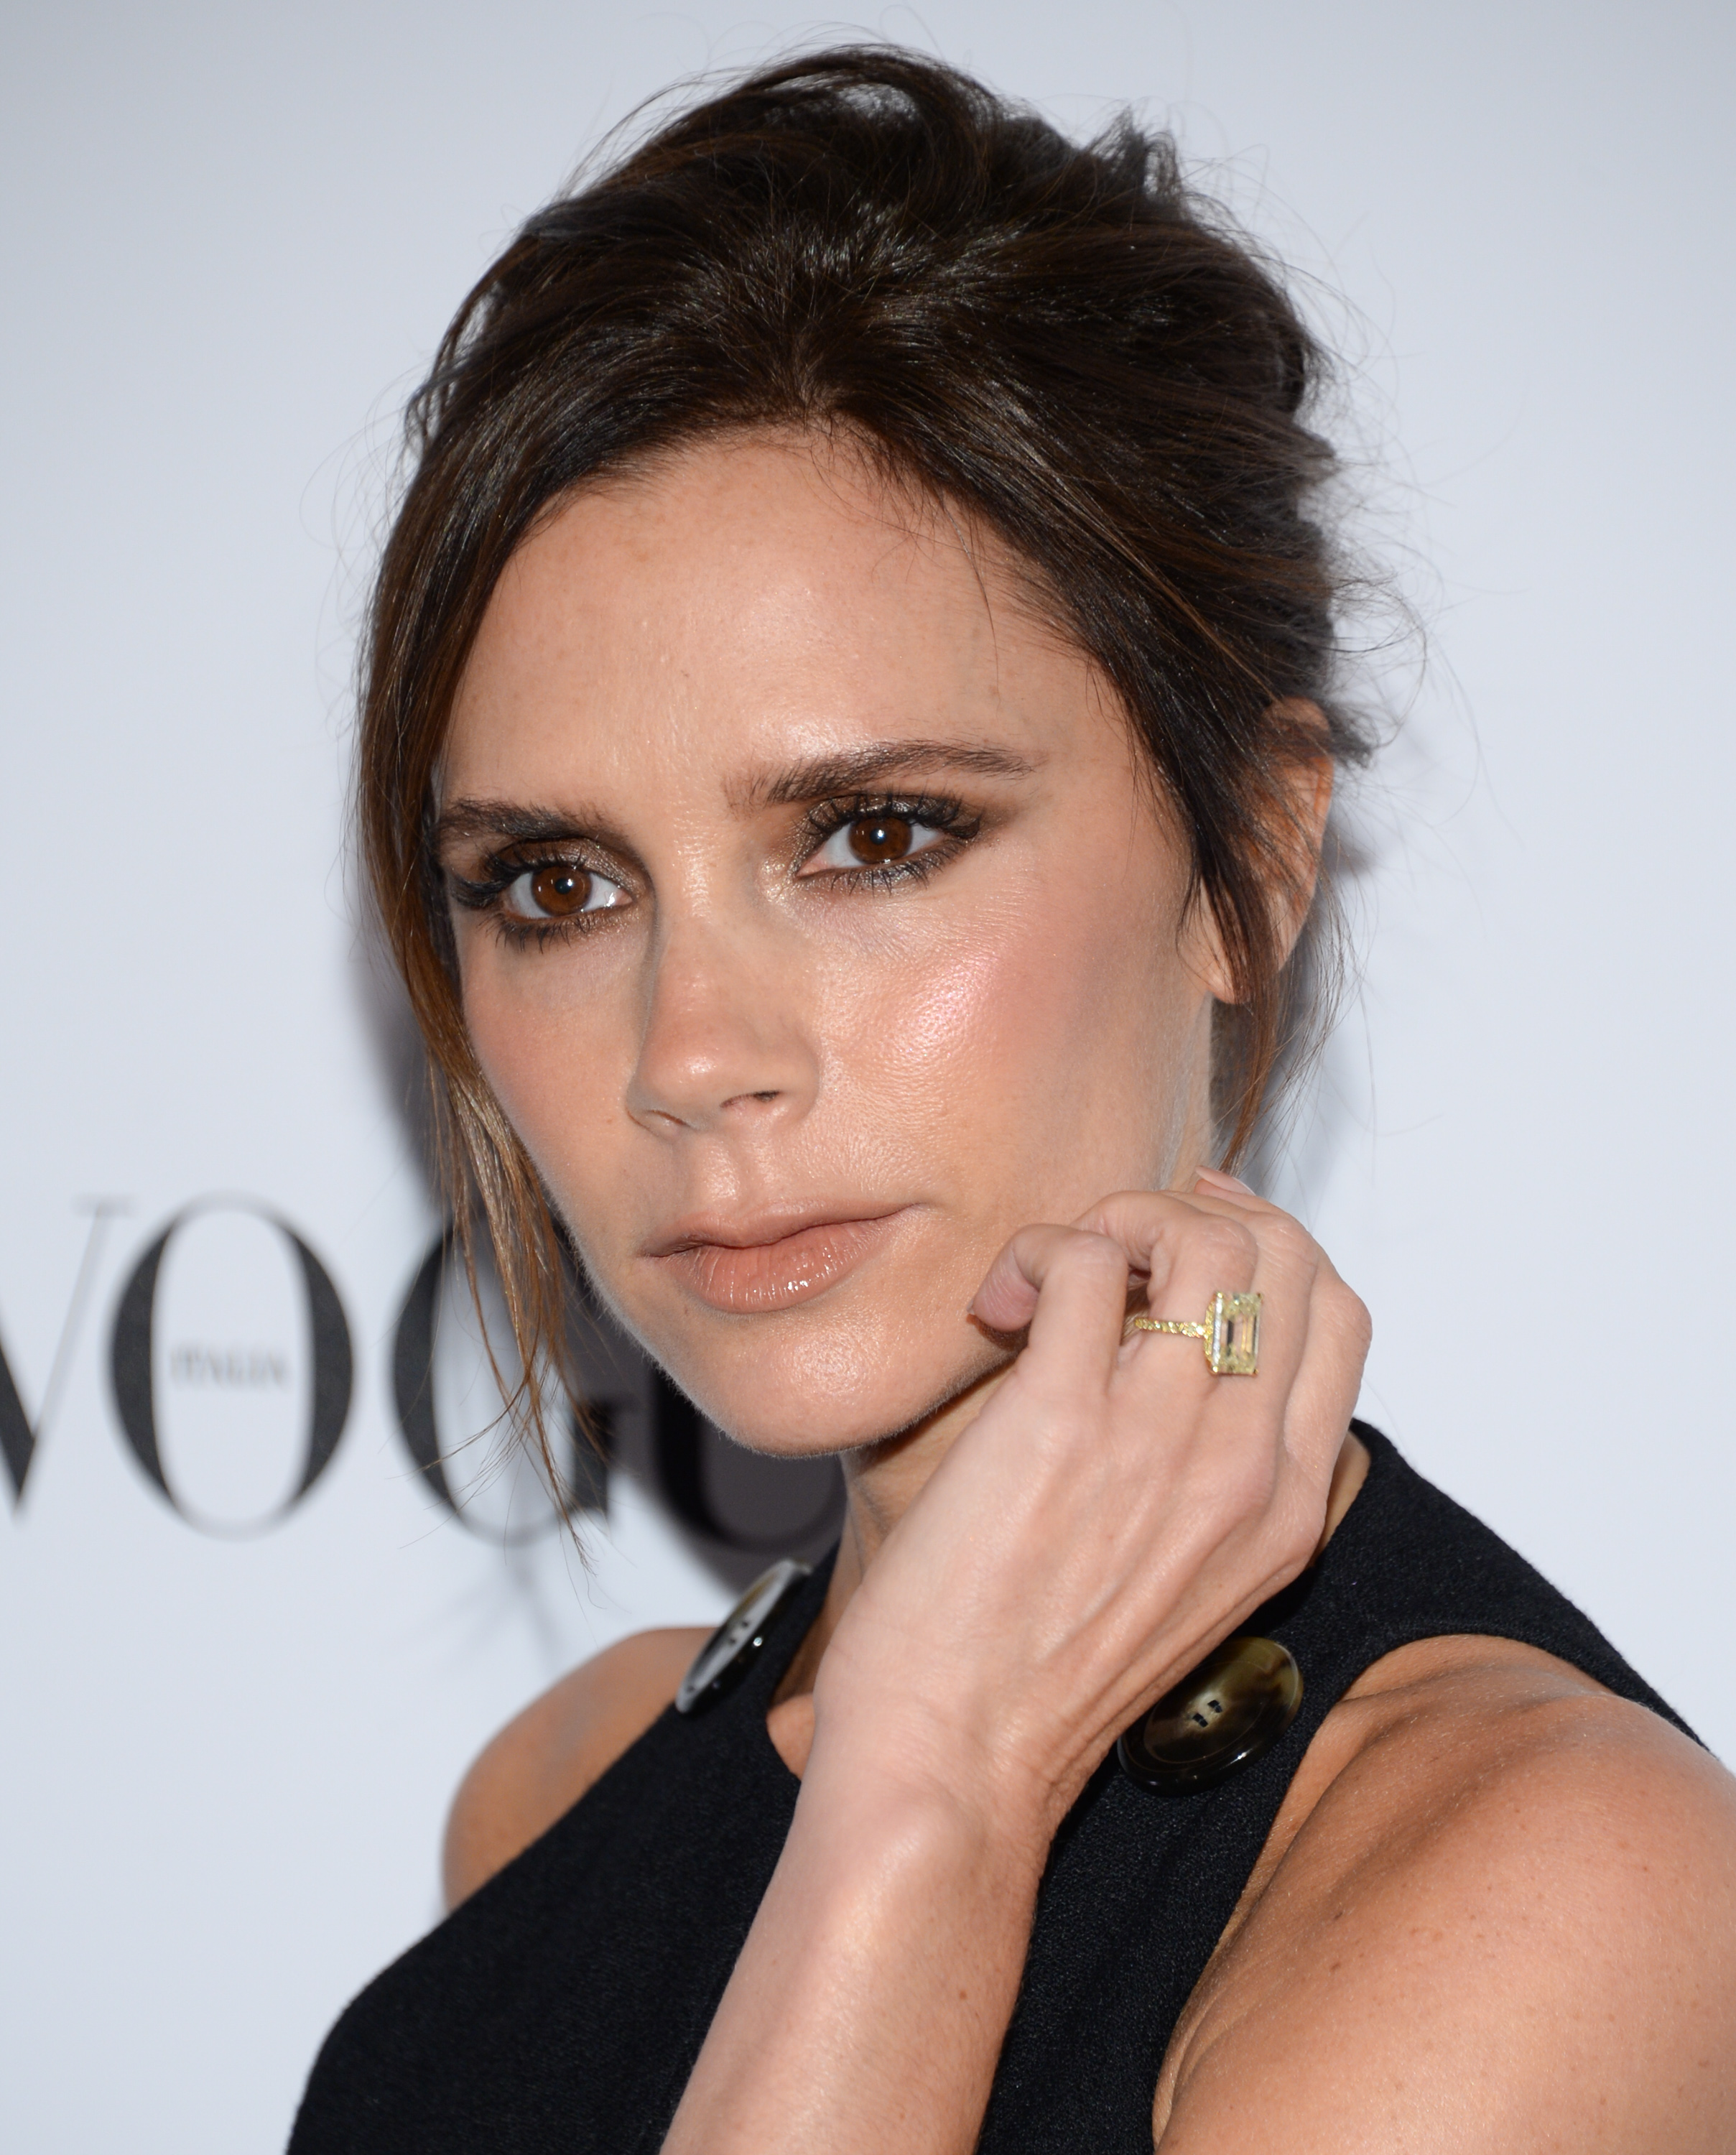 Victoria Beckham Writes Letter to Her 18-Year-Old Self | Time